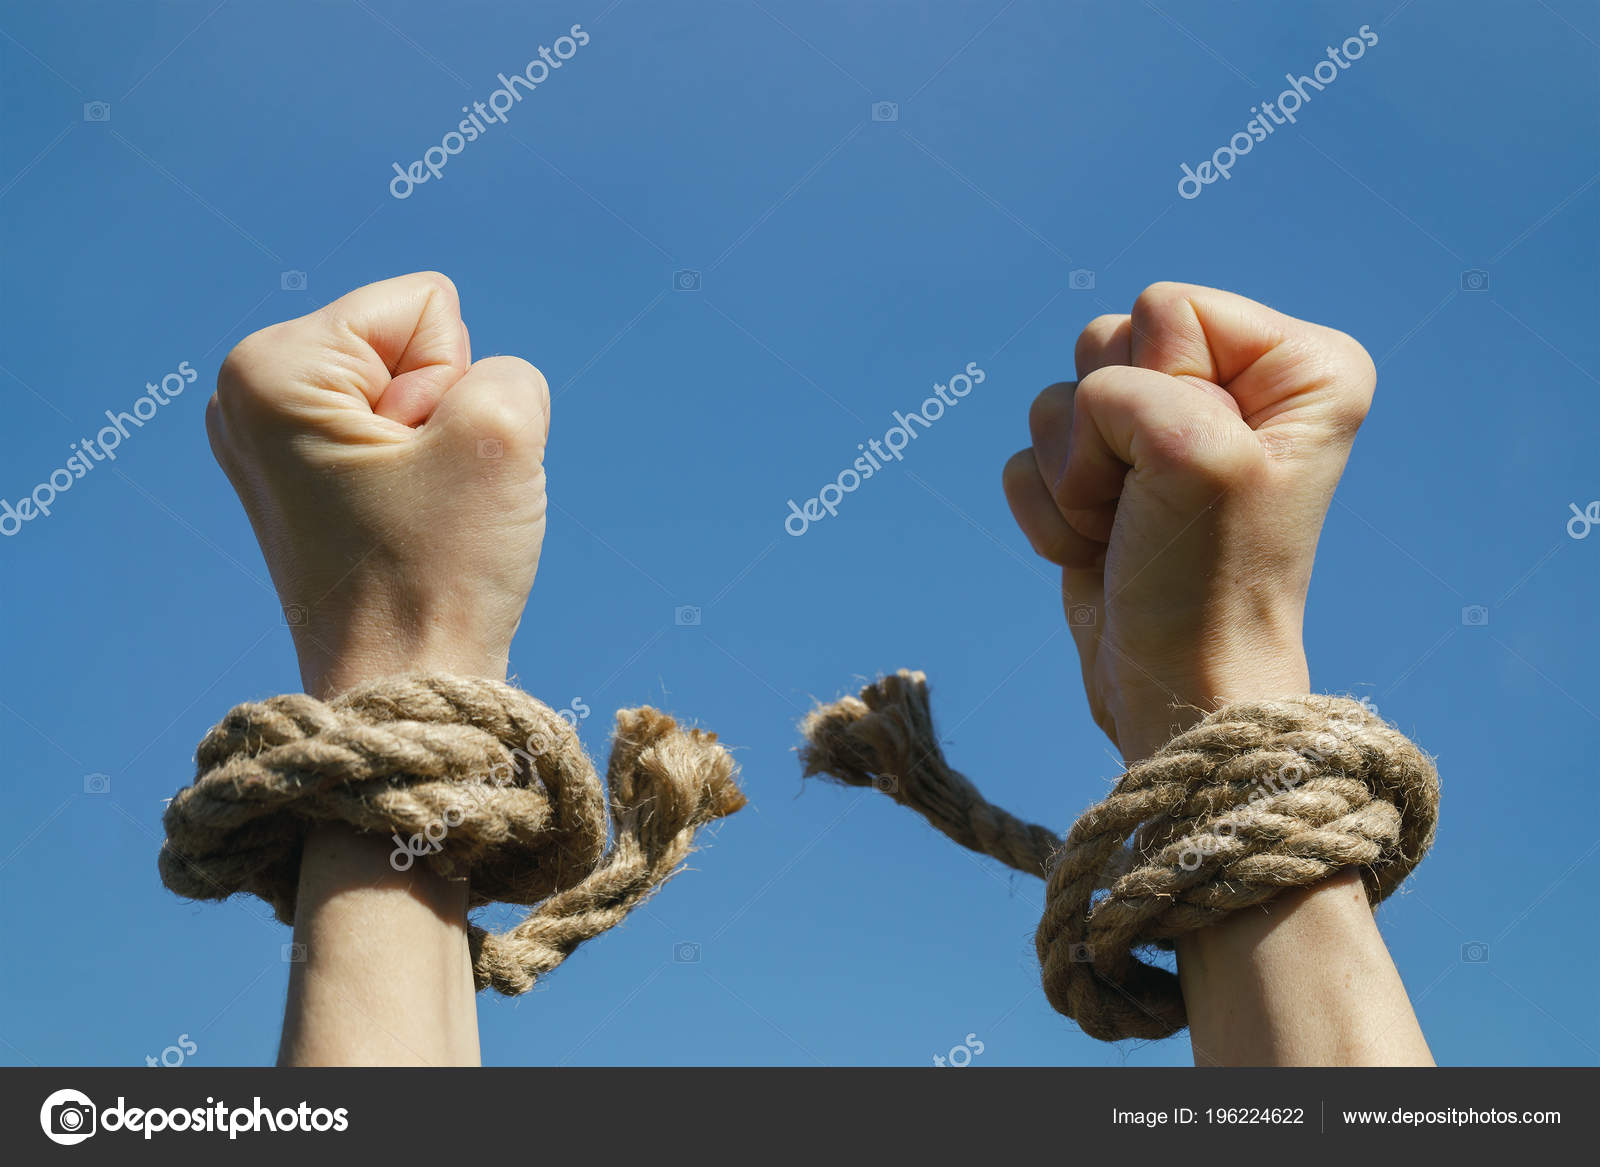 depositphotos_196224622-stock-photo-hands-free-shackles-stretched-blue.jpg